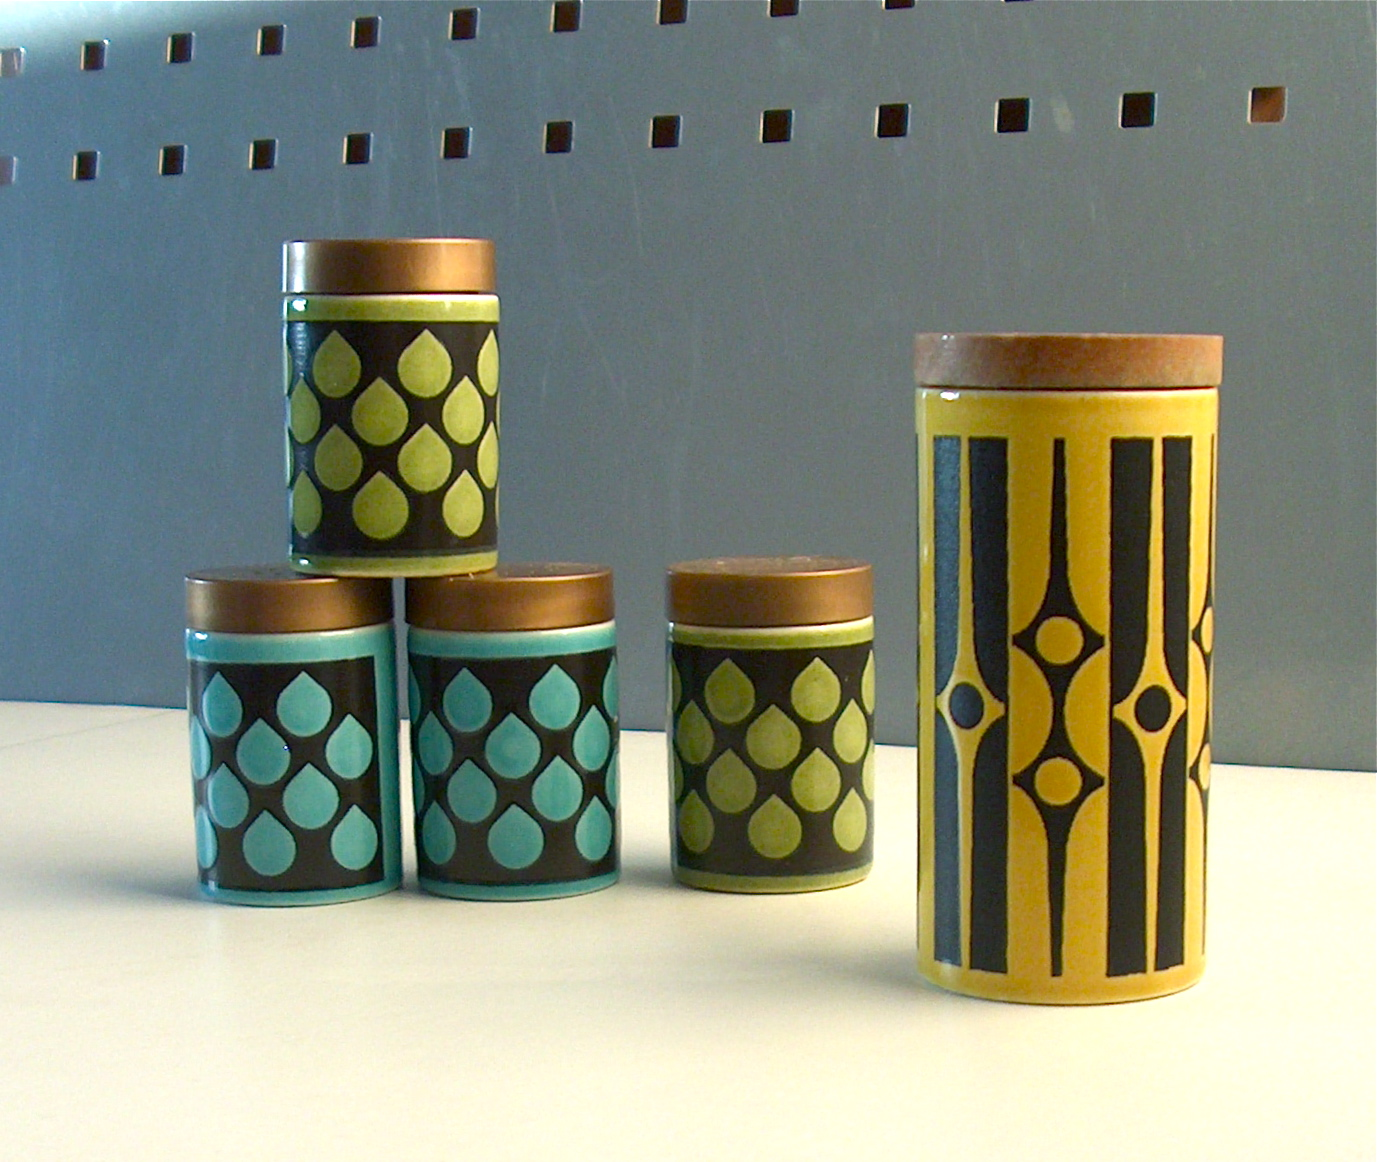 Dating hornsea pottery